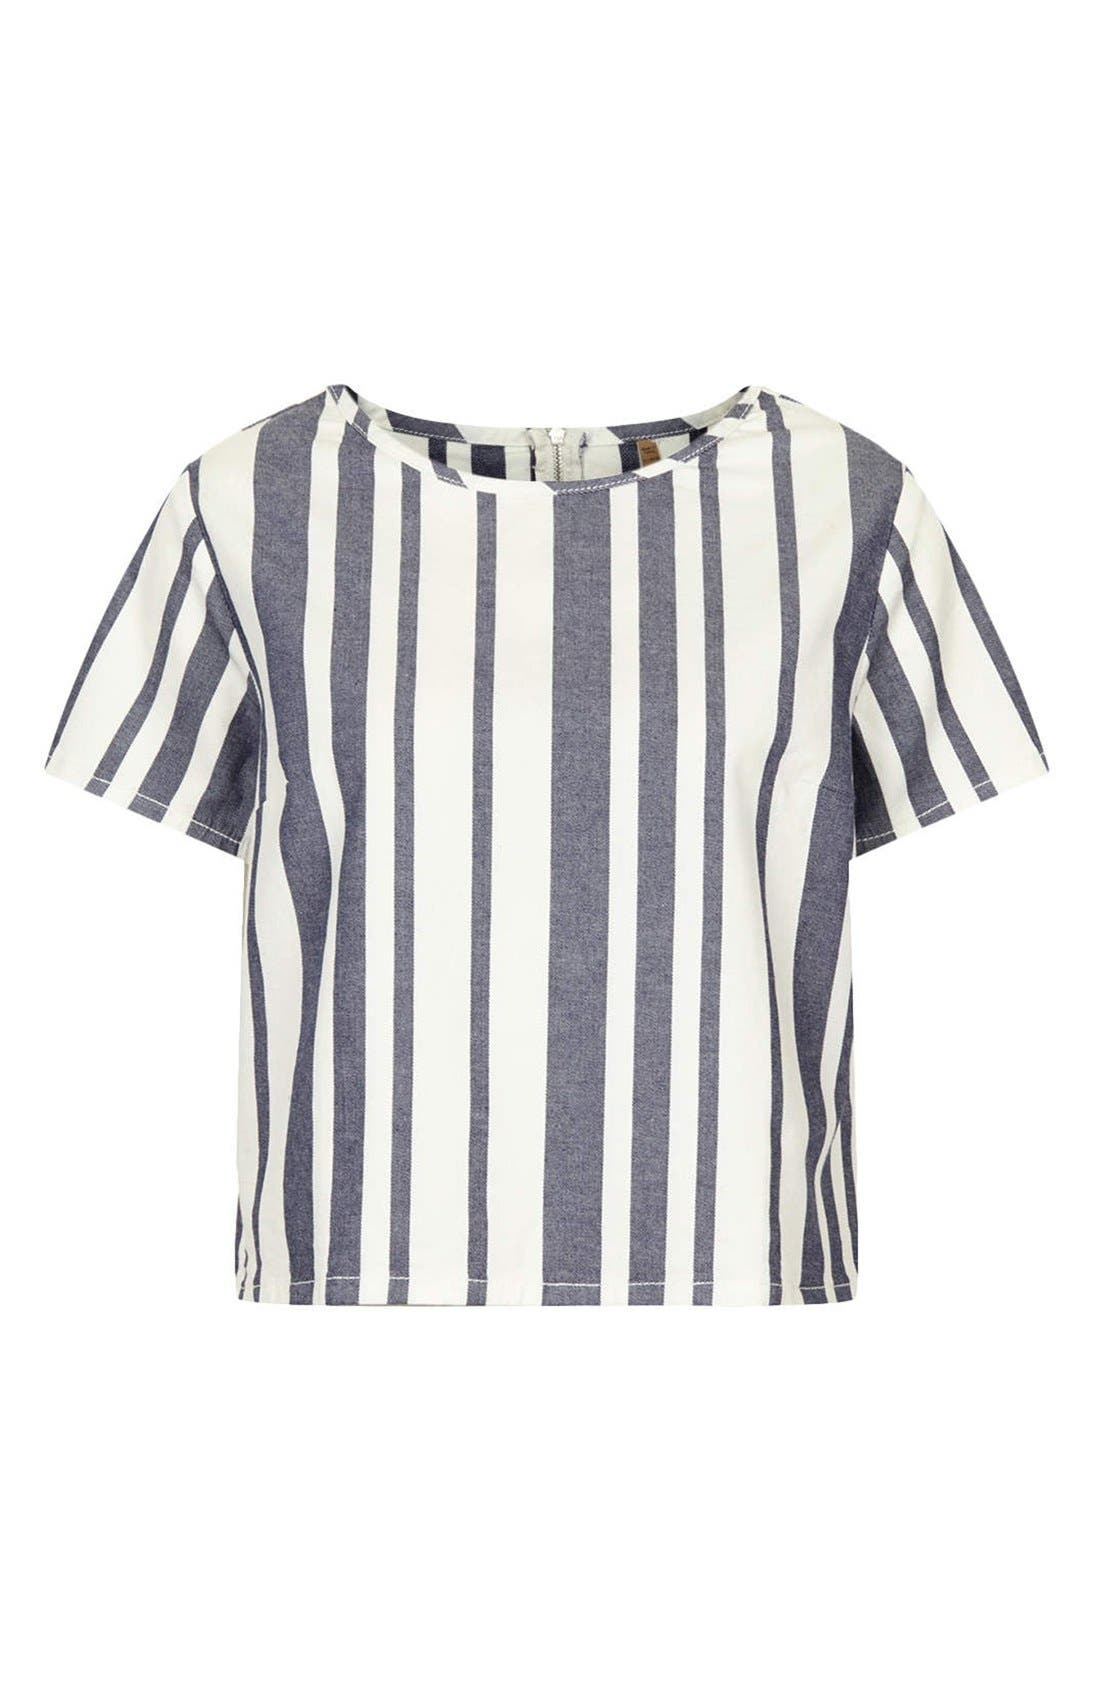 Alternate Image 3  - Topshop Moto Stripe Denim Tee